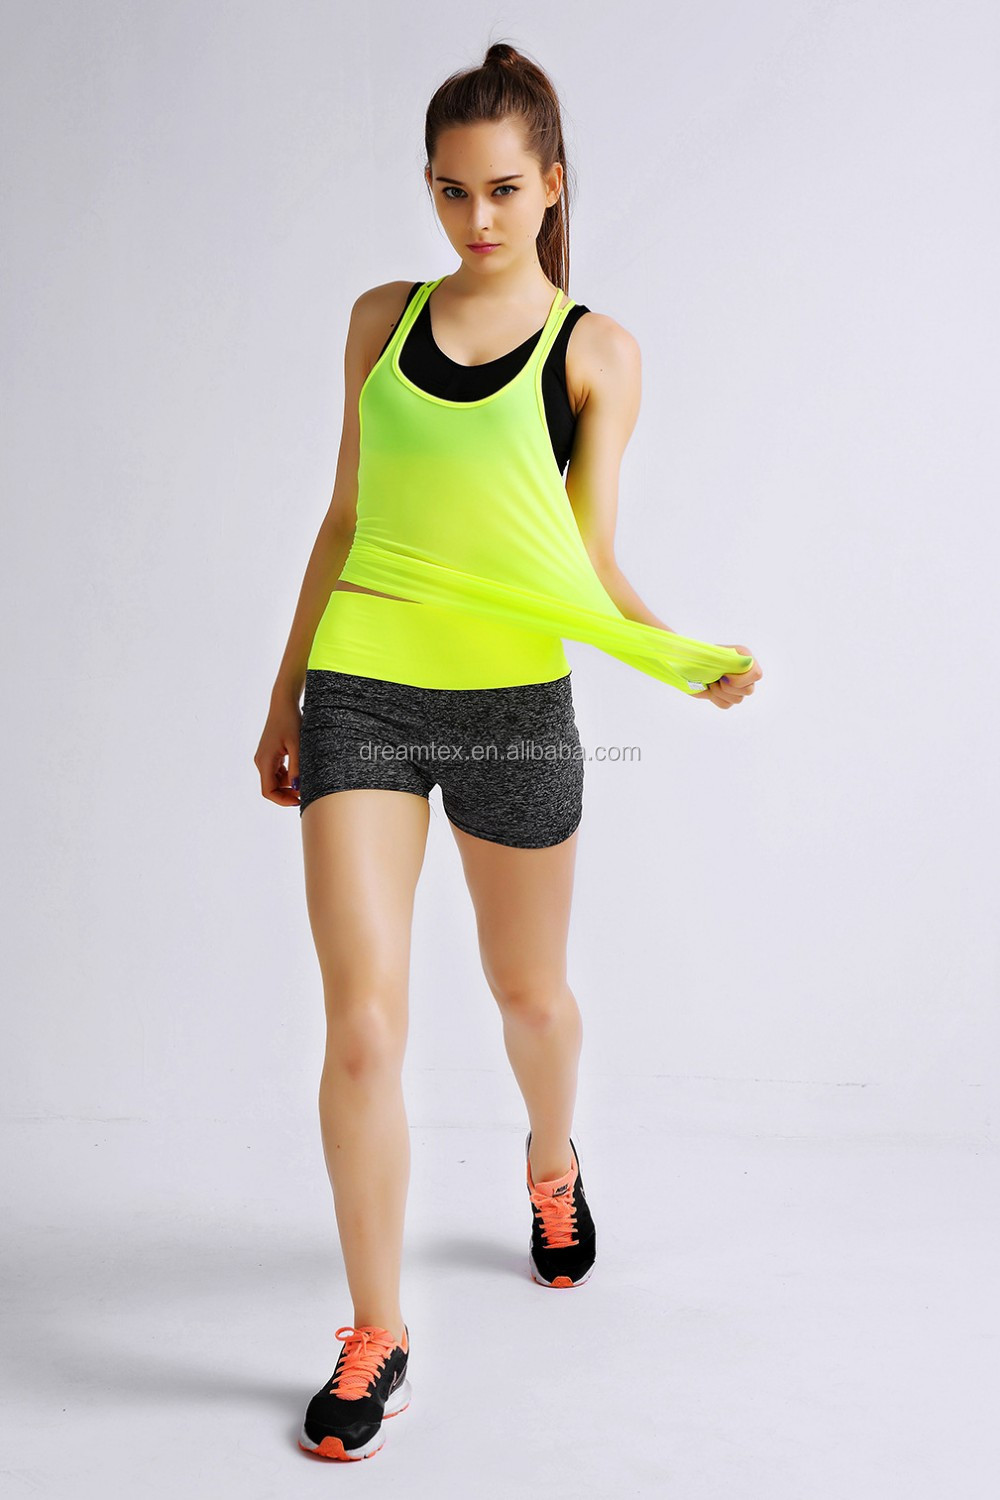 Ebay high quality custom design yoga gym women fitness tank top